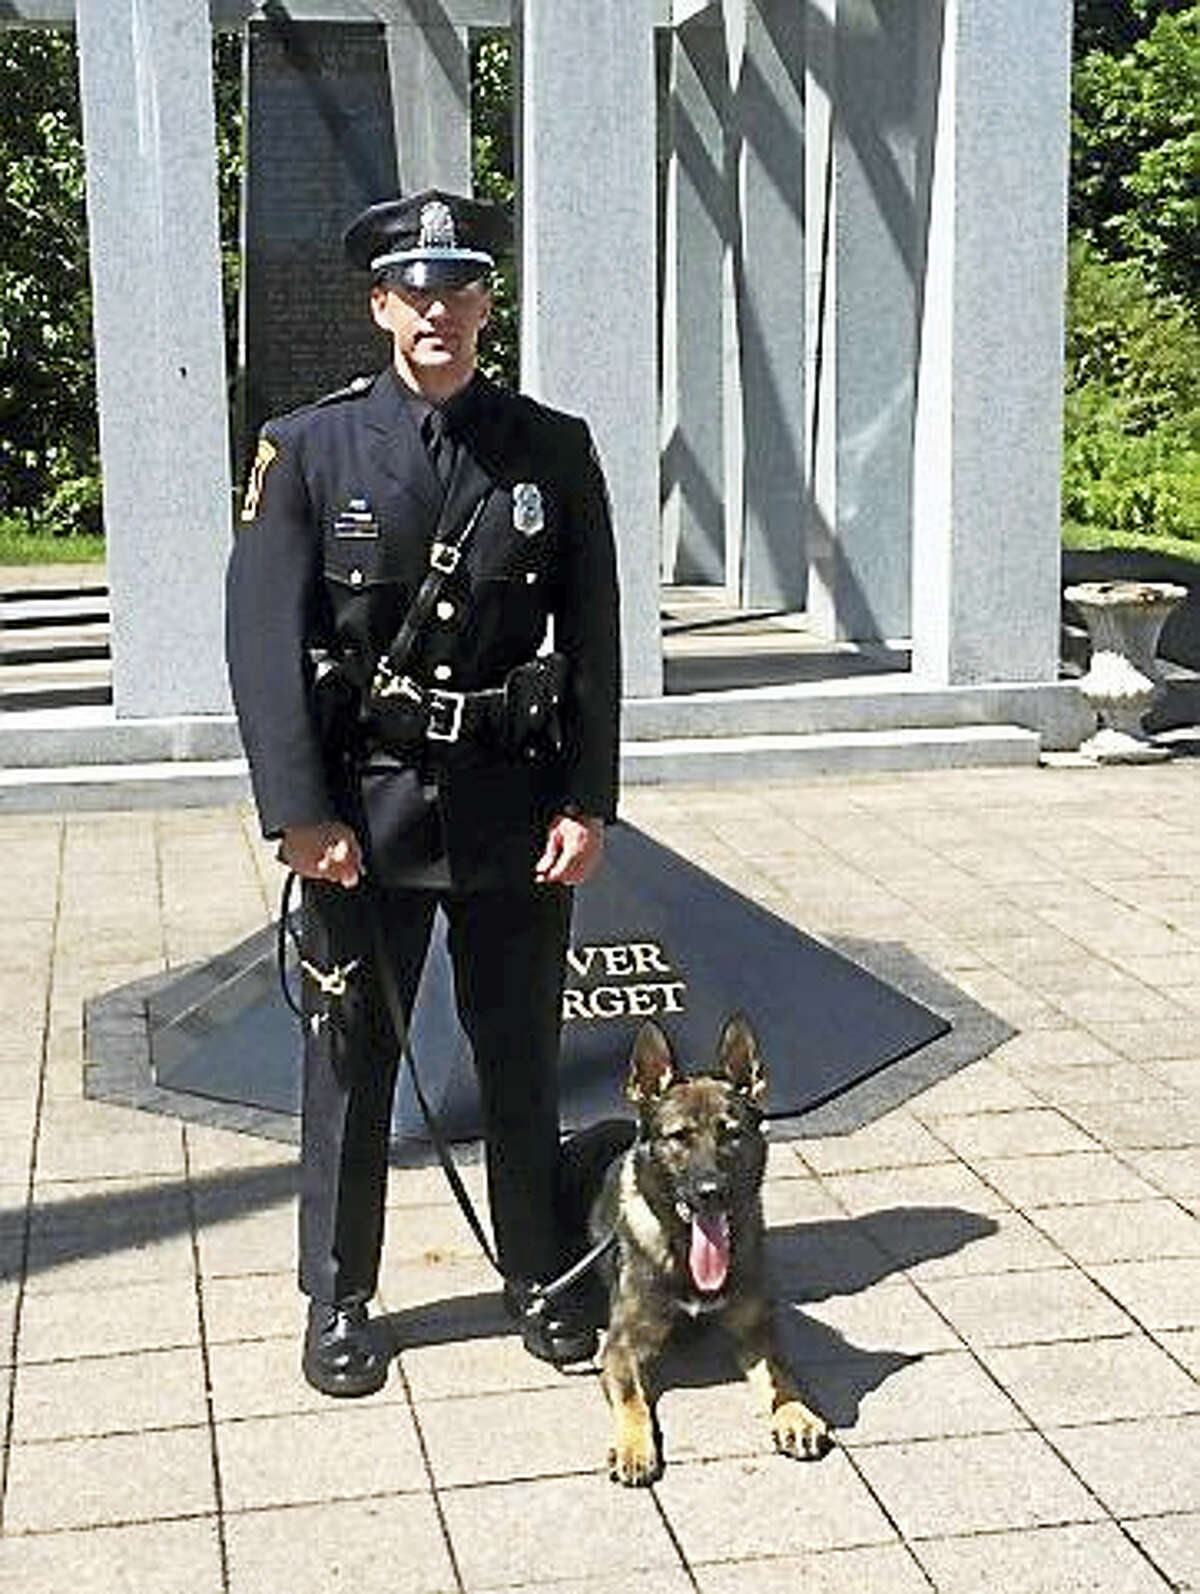 Mack and his handler, Officer Steven Napoletano, are members of the Milford Police Department's K-9 Unit.